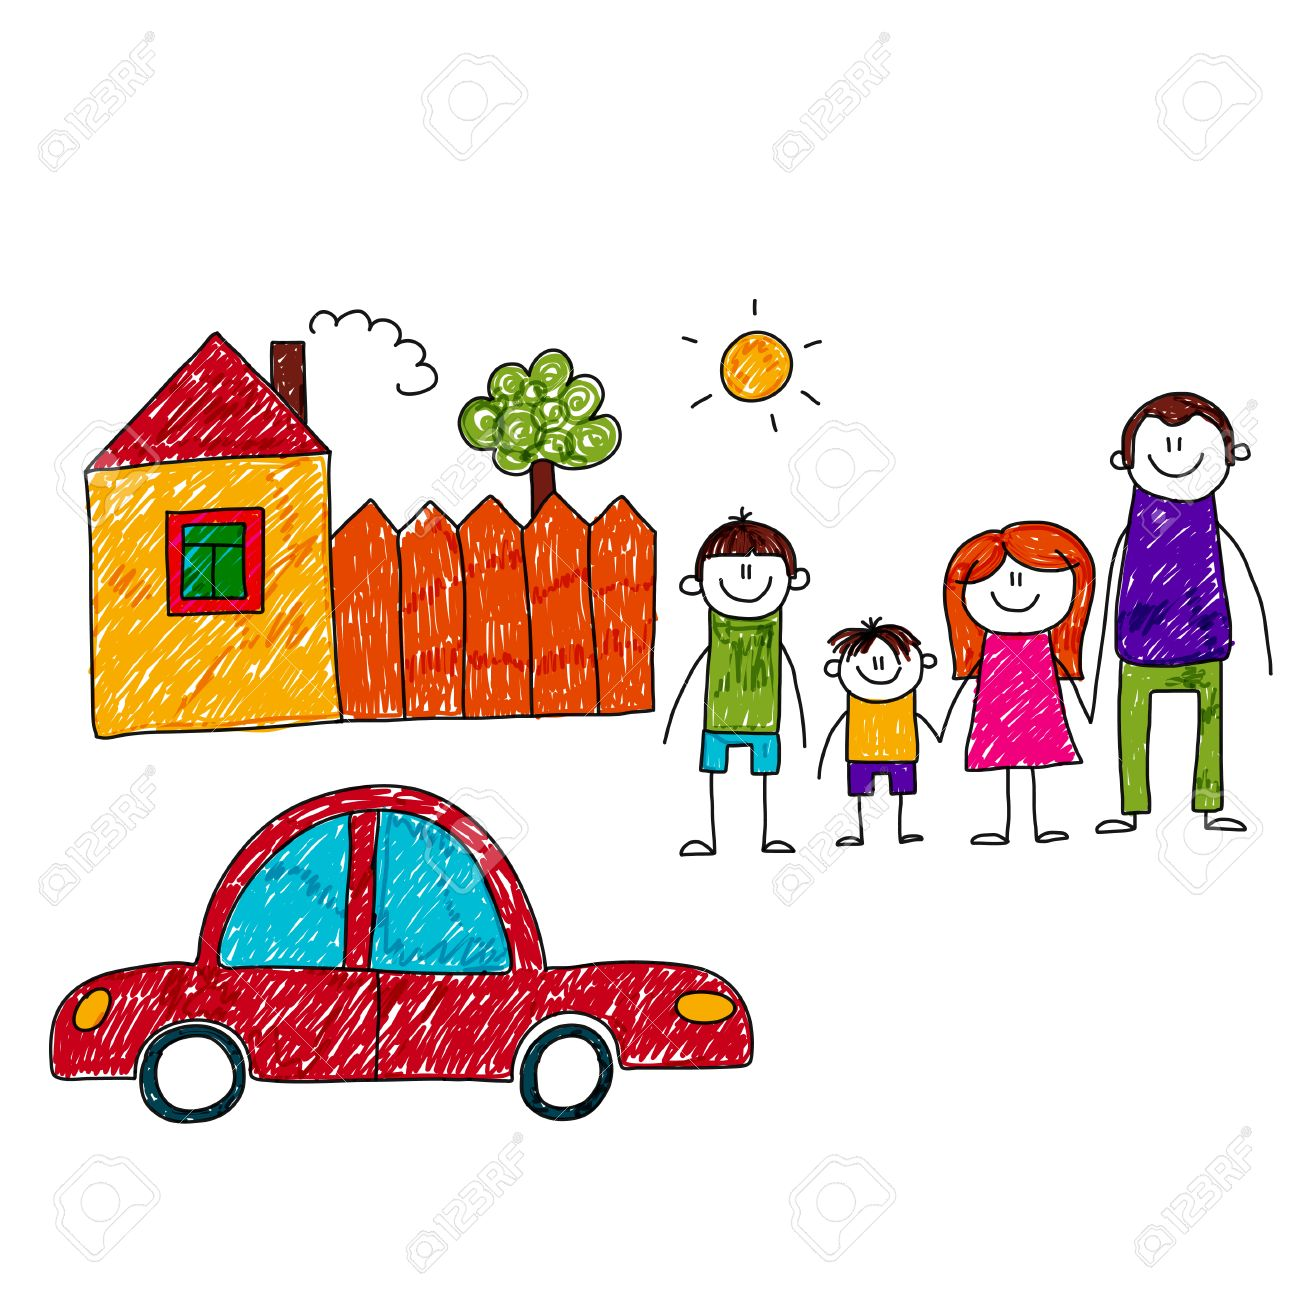 image of happy family with car and house kids drawing royalty